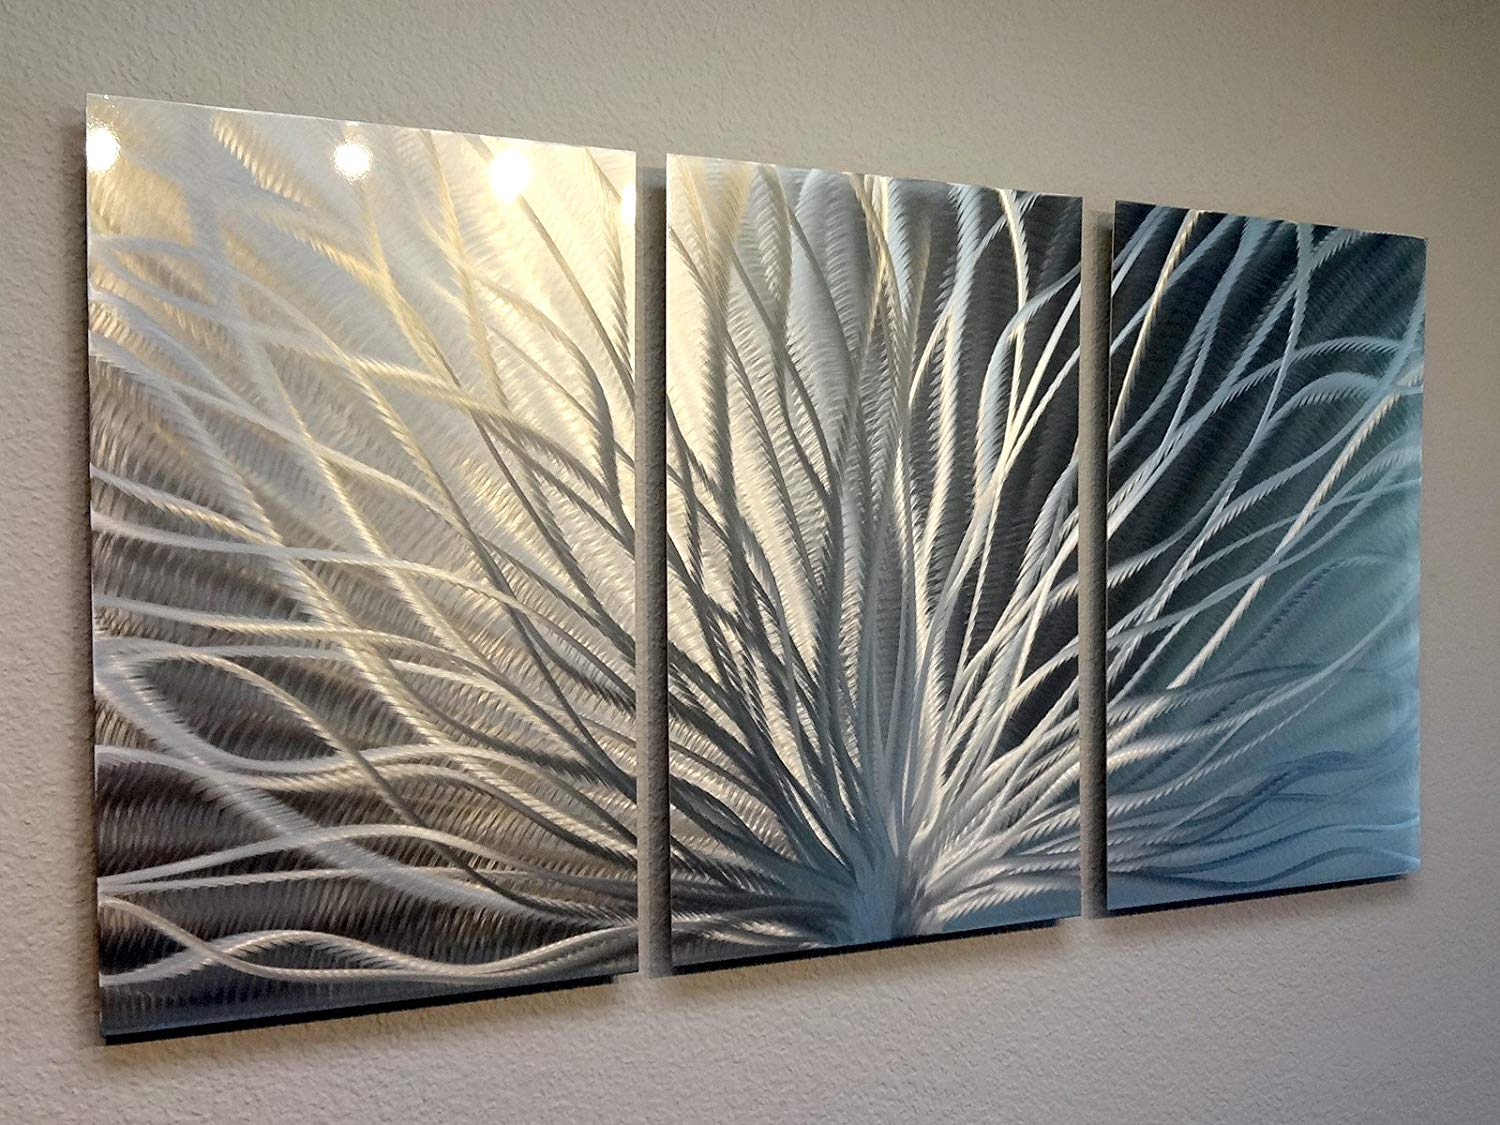 Image of: Awesome Metal Wall Art Panels